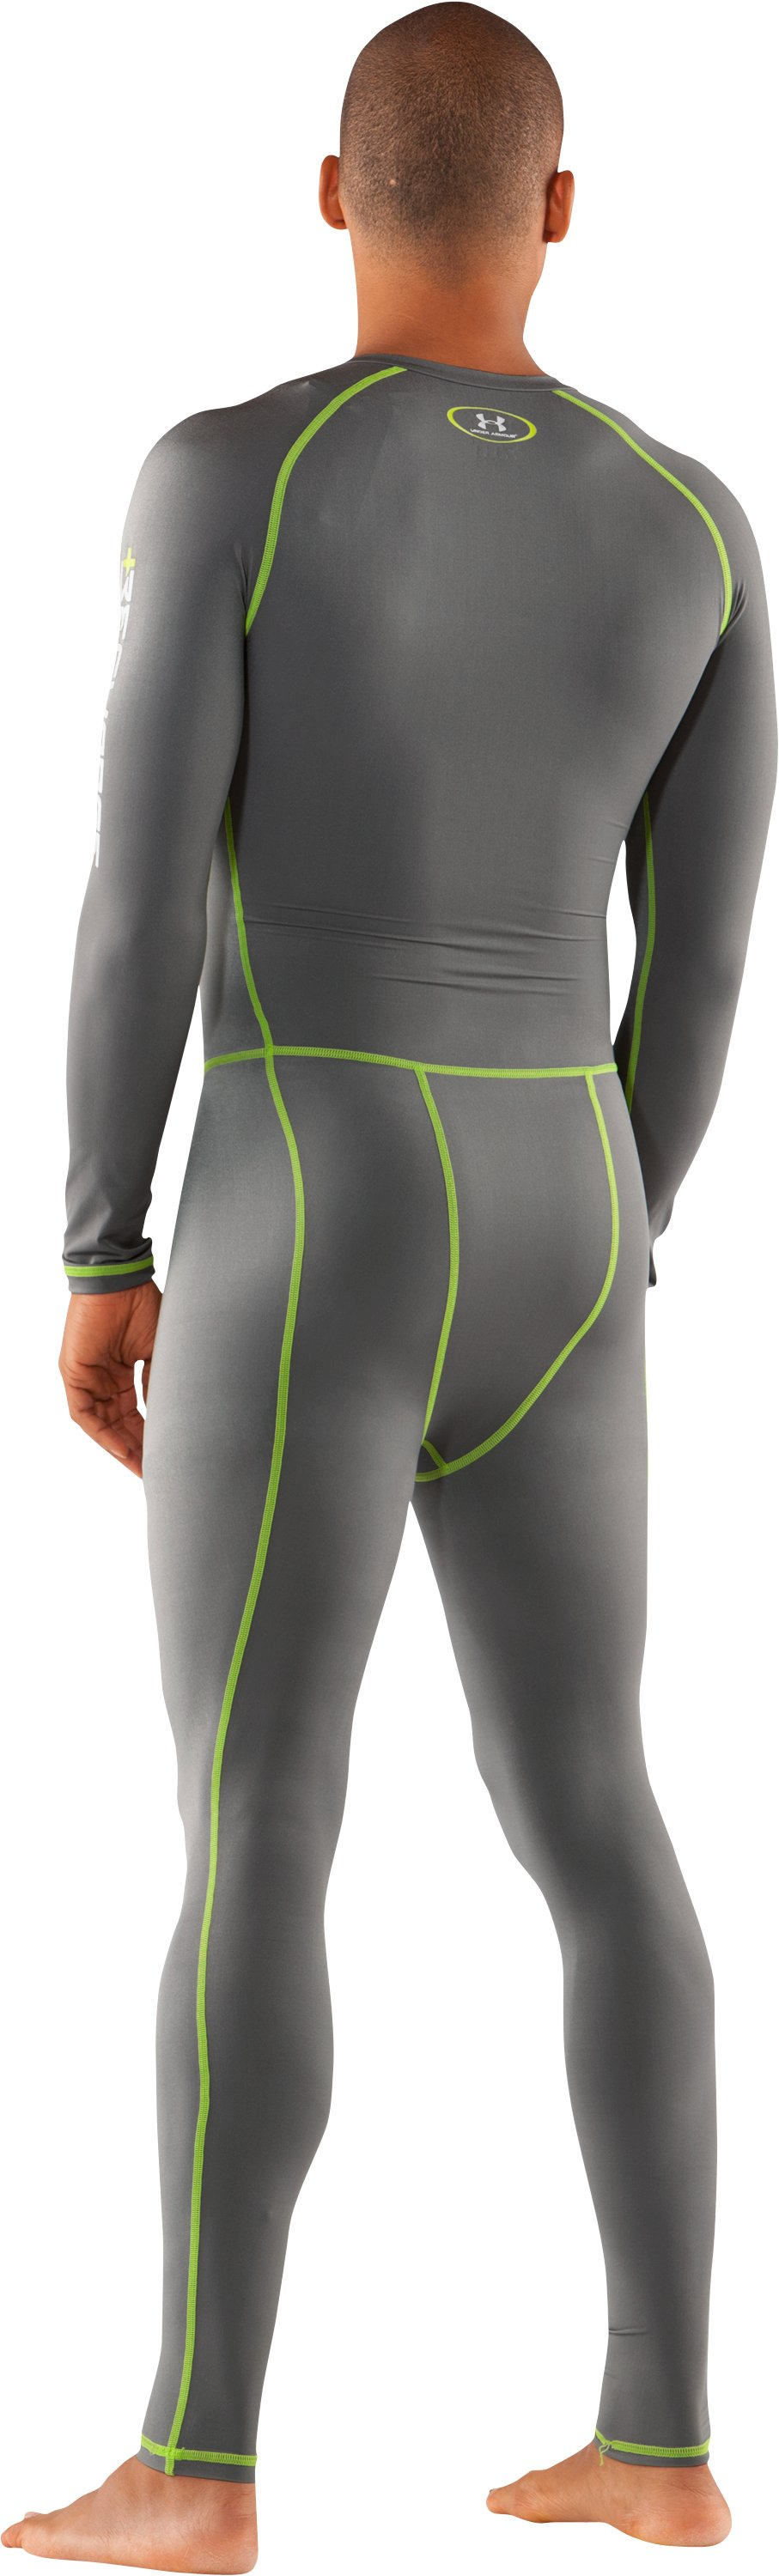 Men's Recharge® Energy Suit, Metal, Back